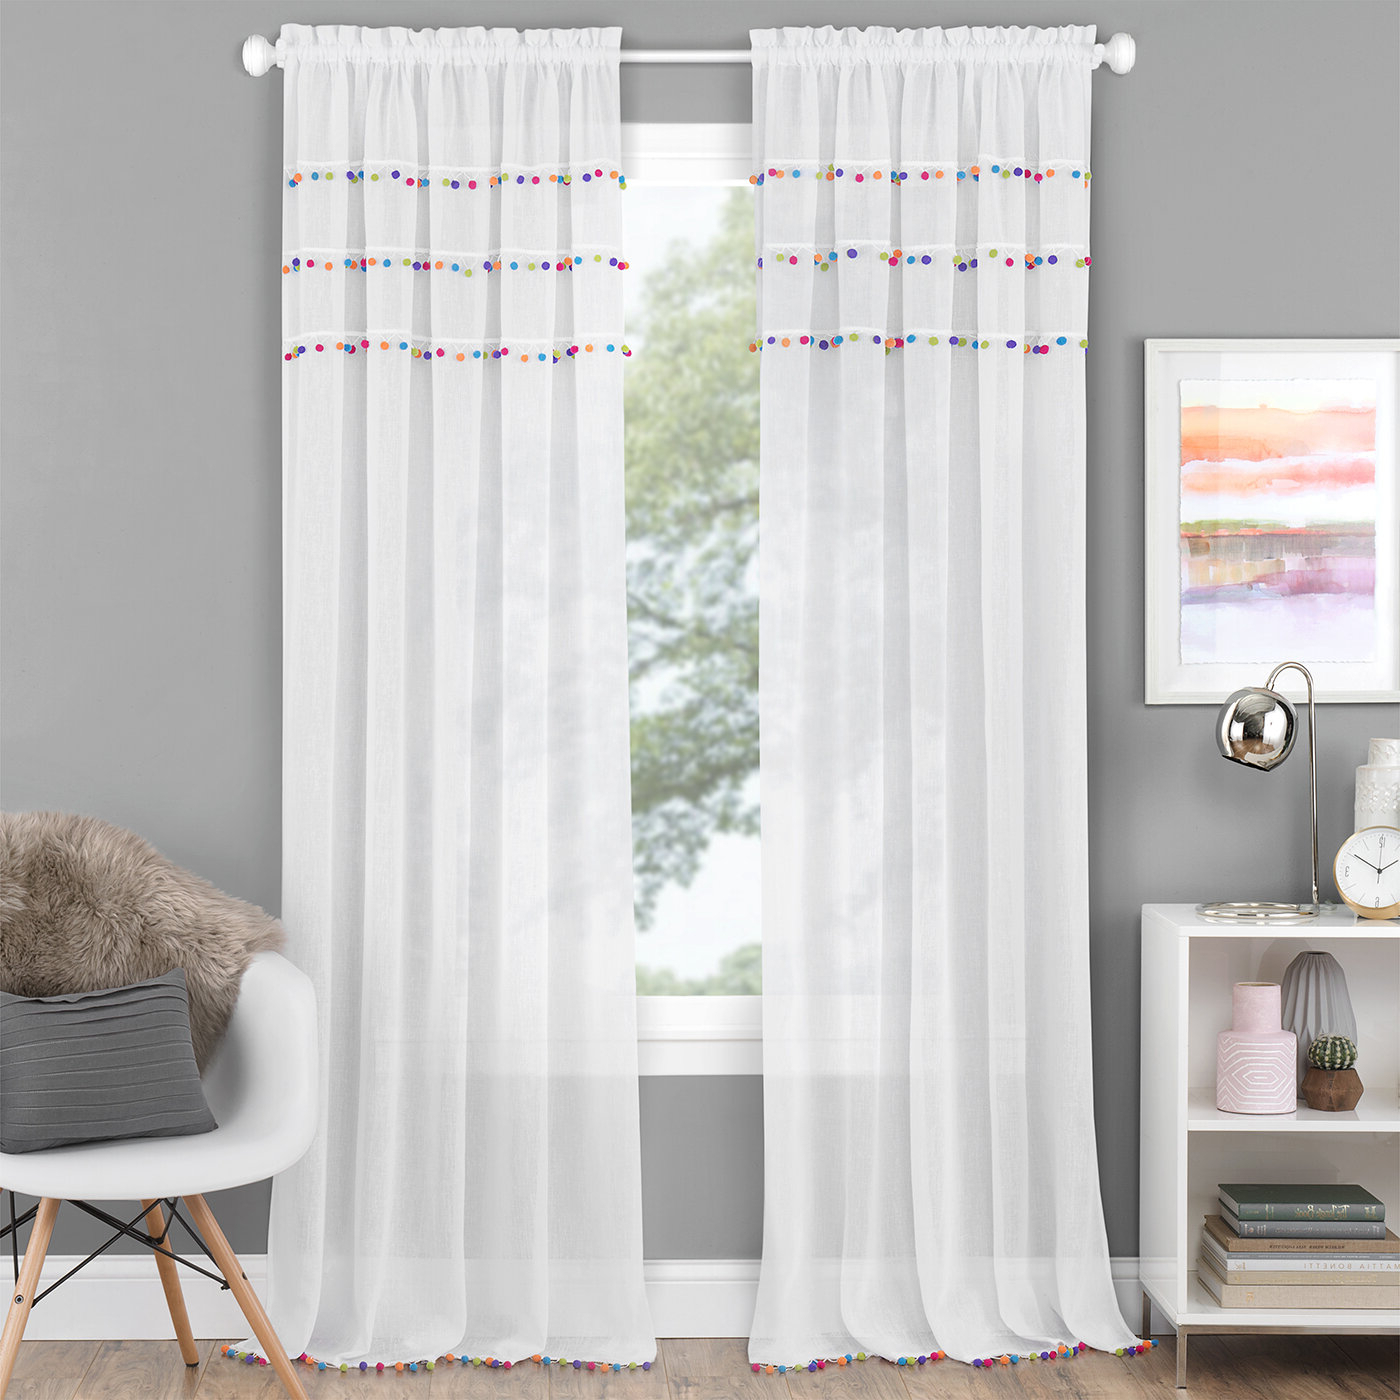 Bungalow Rose Rousey Solid Semi Sheer Rod Pocket Curtain For Well Known Kaylee Solid Crushed Sheer Window Curtain Pairs (View 12 of 20)